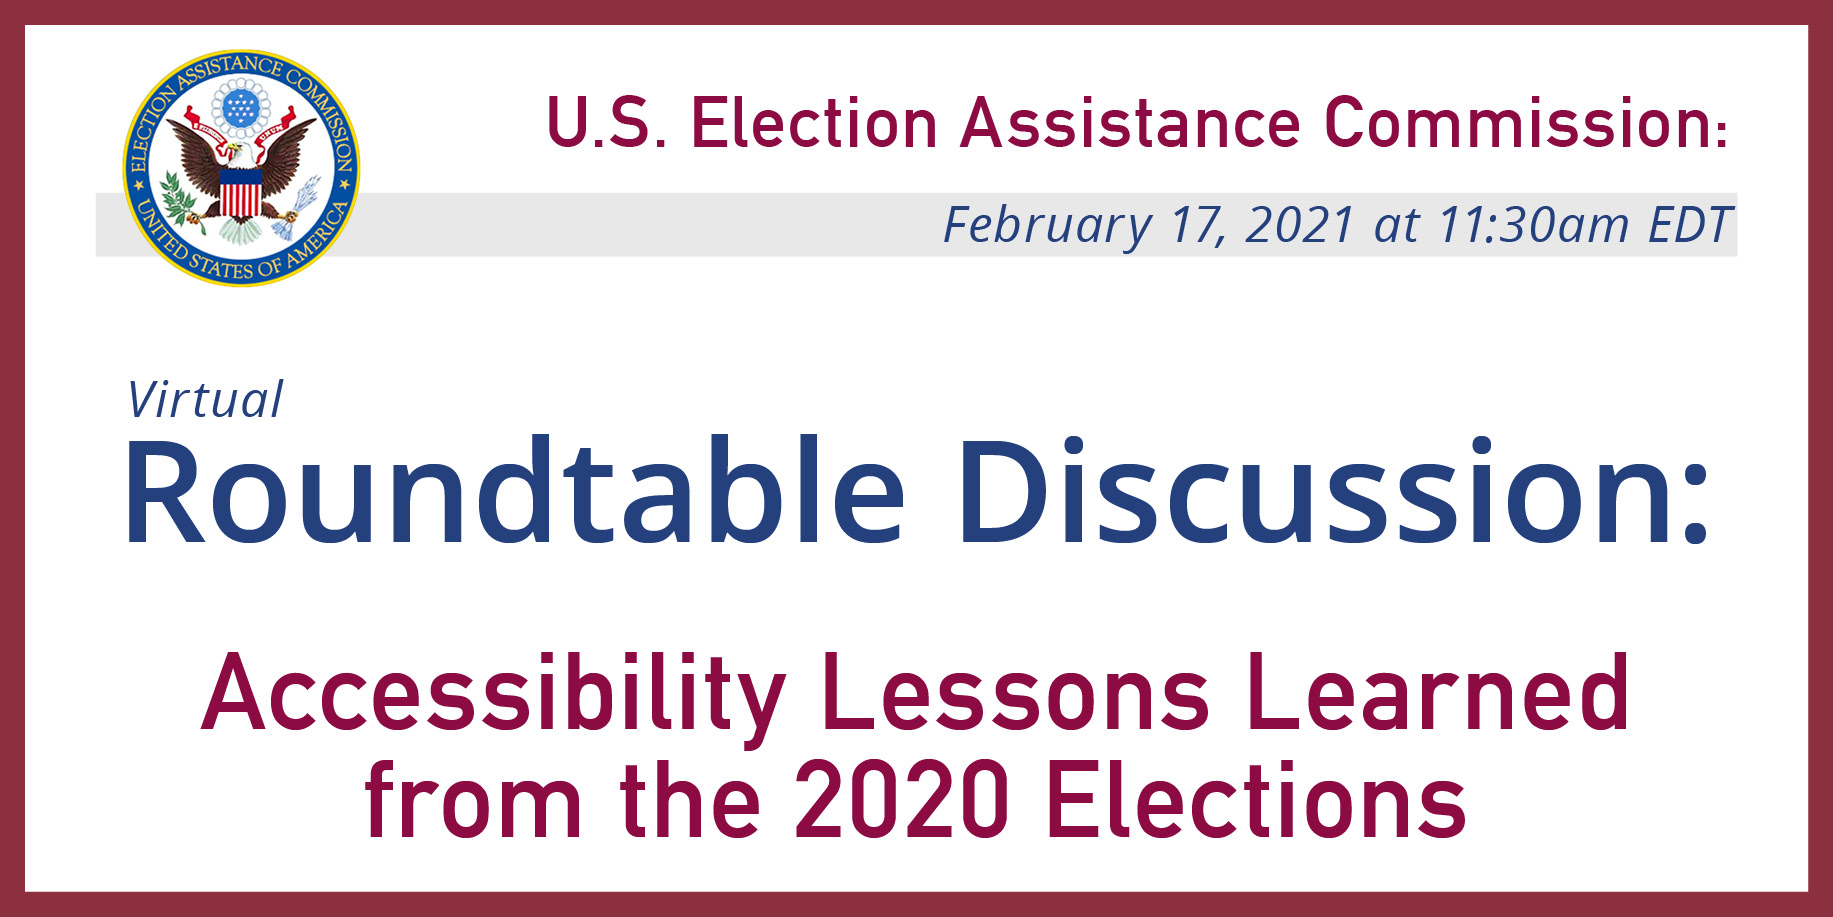 EAC Roundtable Discussion: Accessibility Lessons Learned  from the 2020 Elections on February 17, 2021